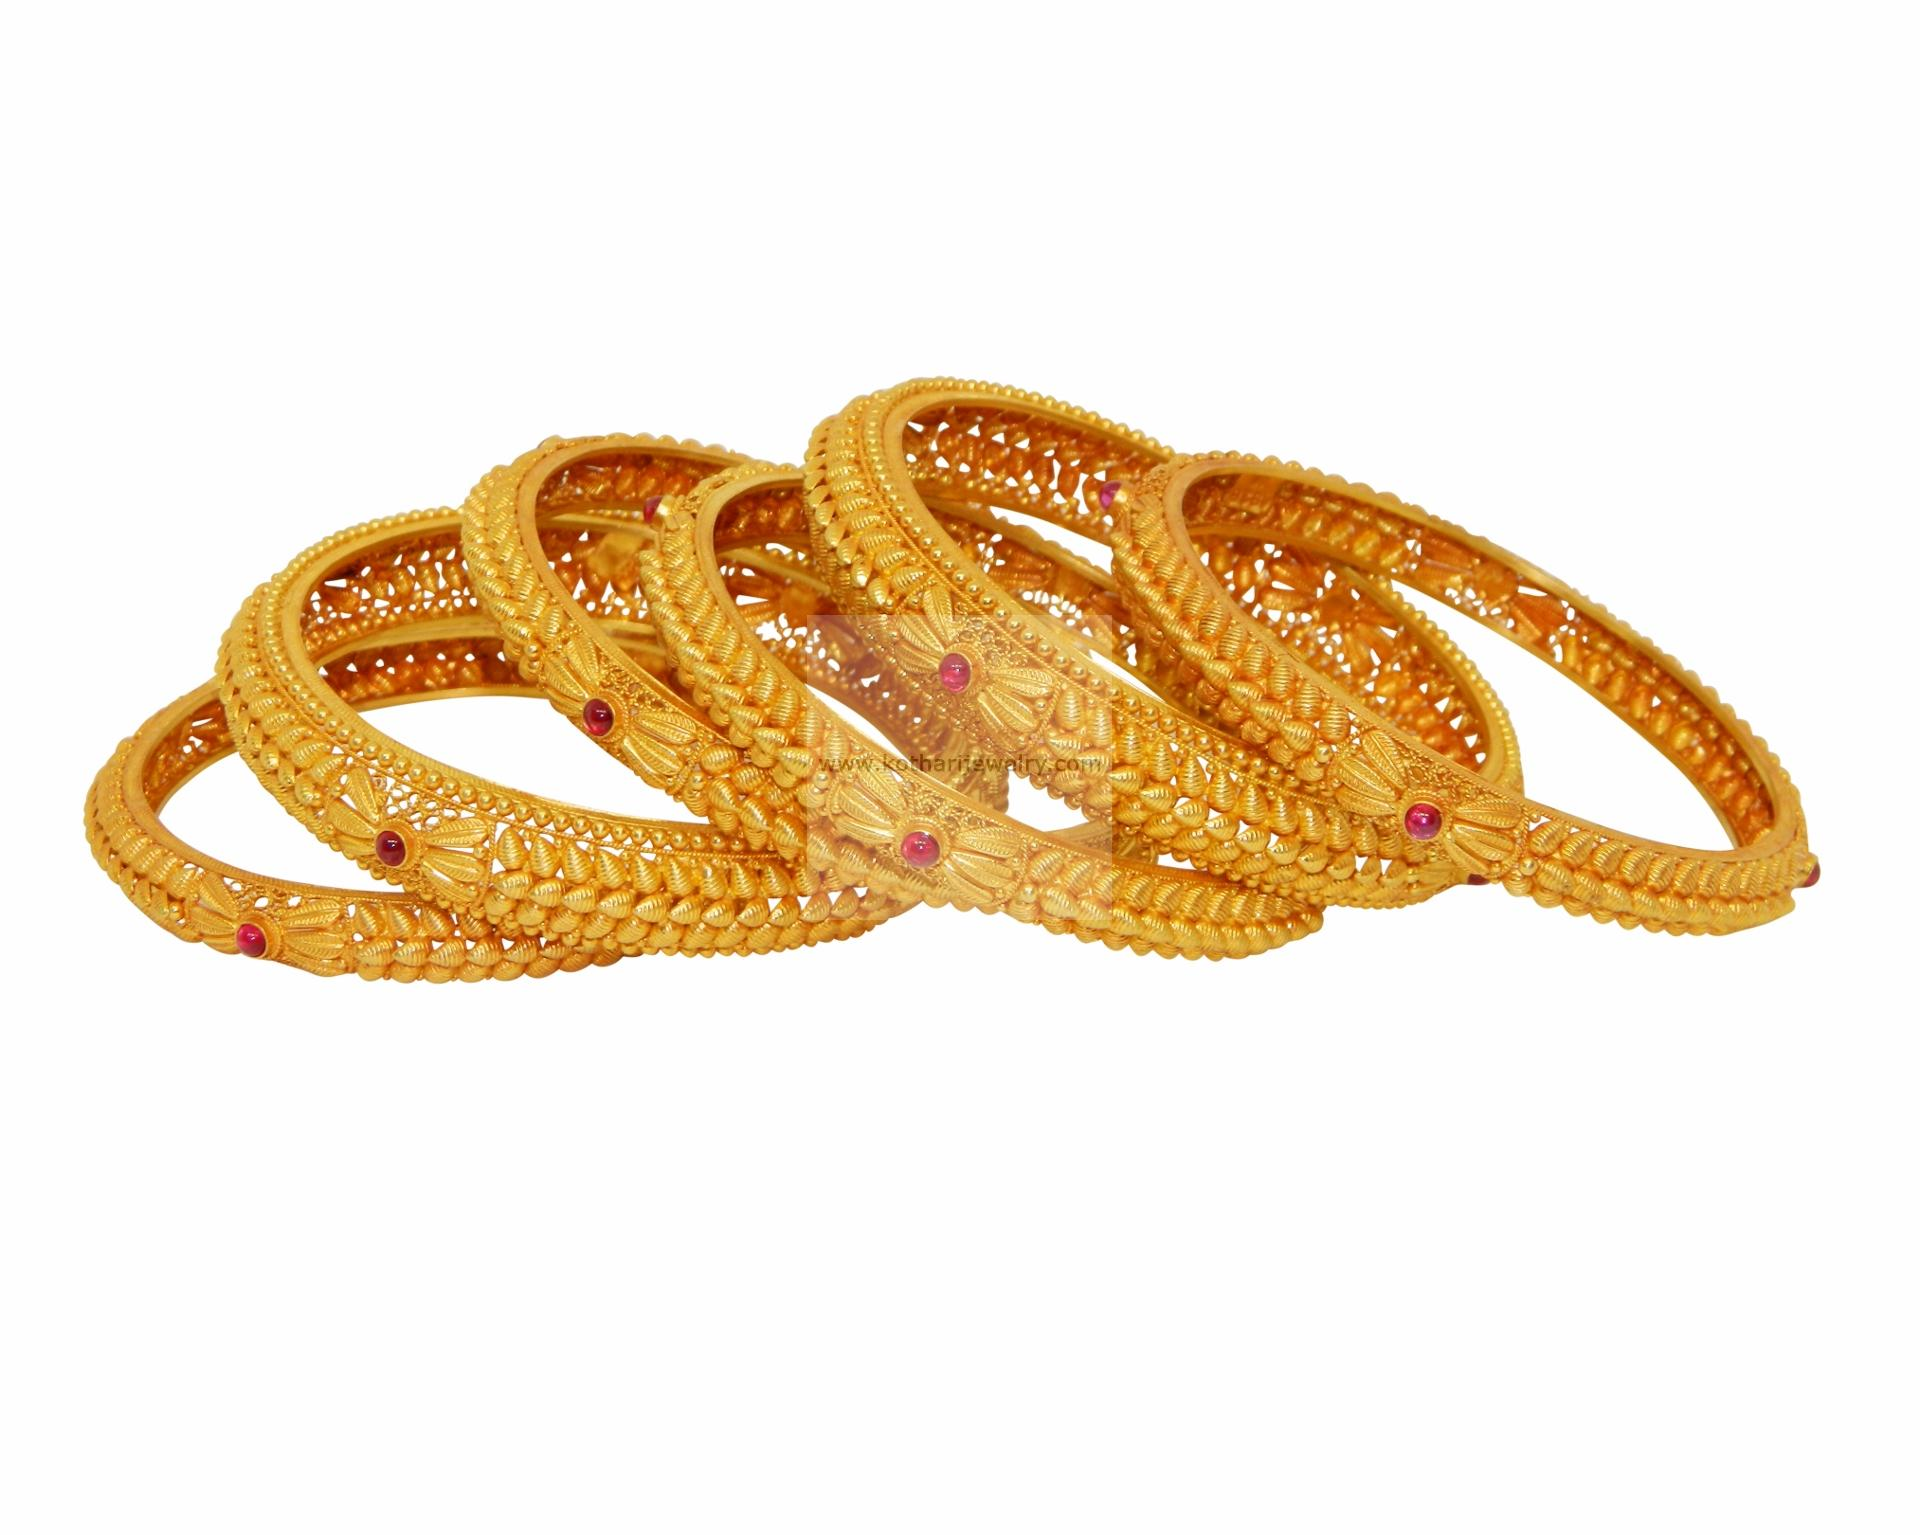 karat wonder designs buy bangle in twirled the bracelets pics online india jewellery bangles bluestone gold